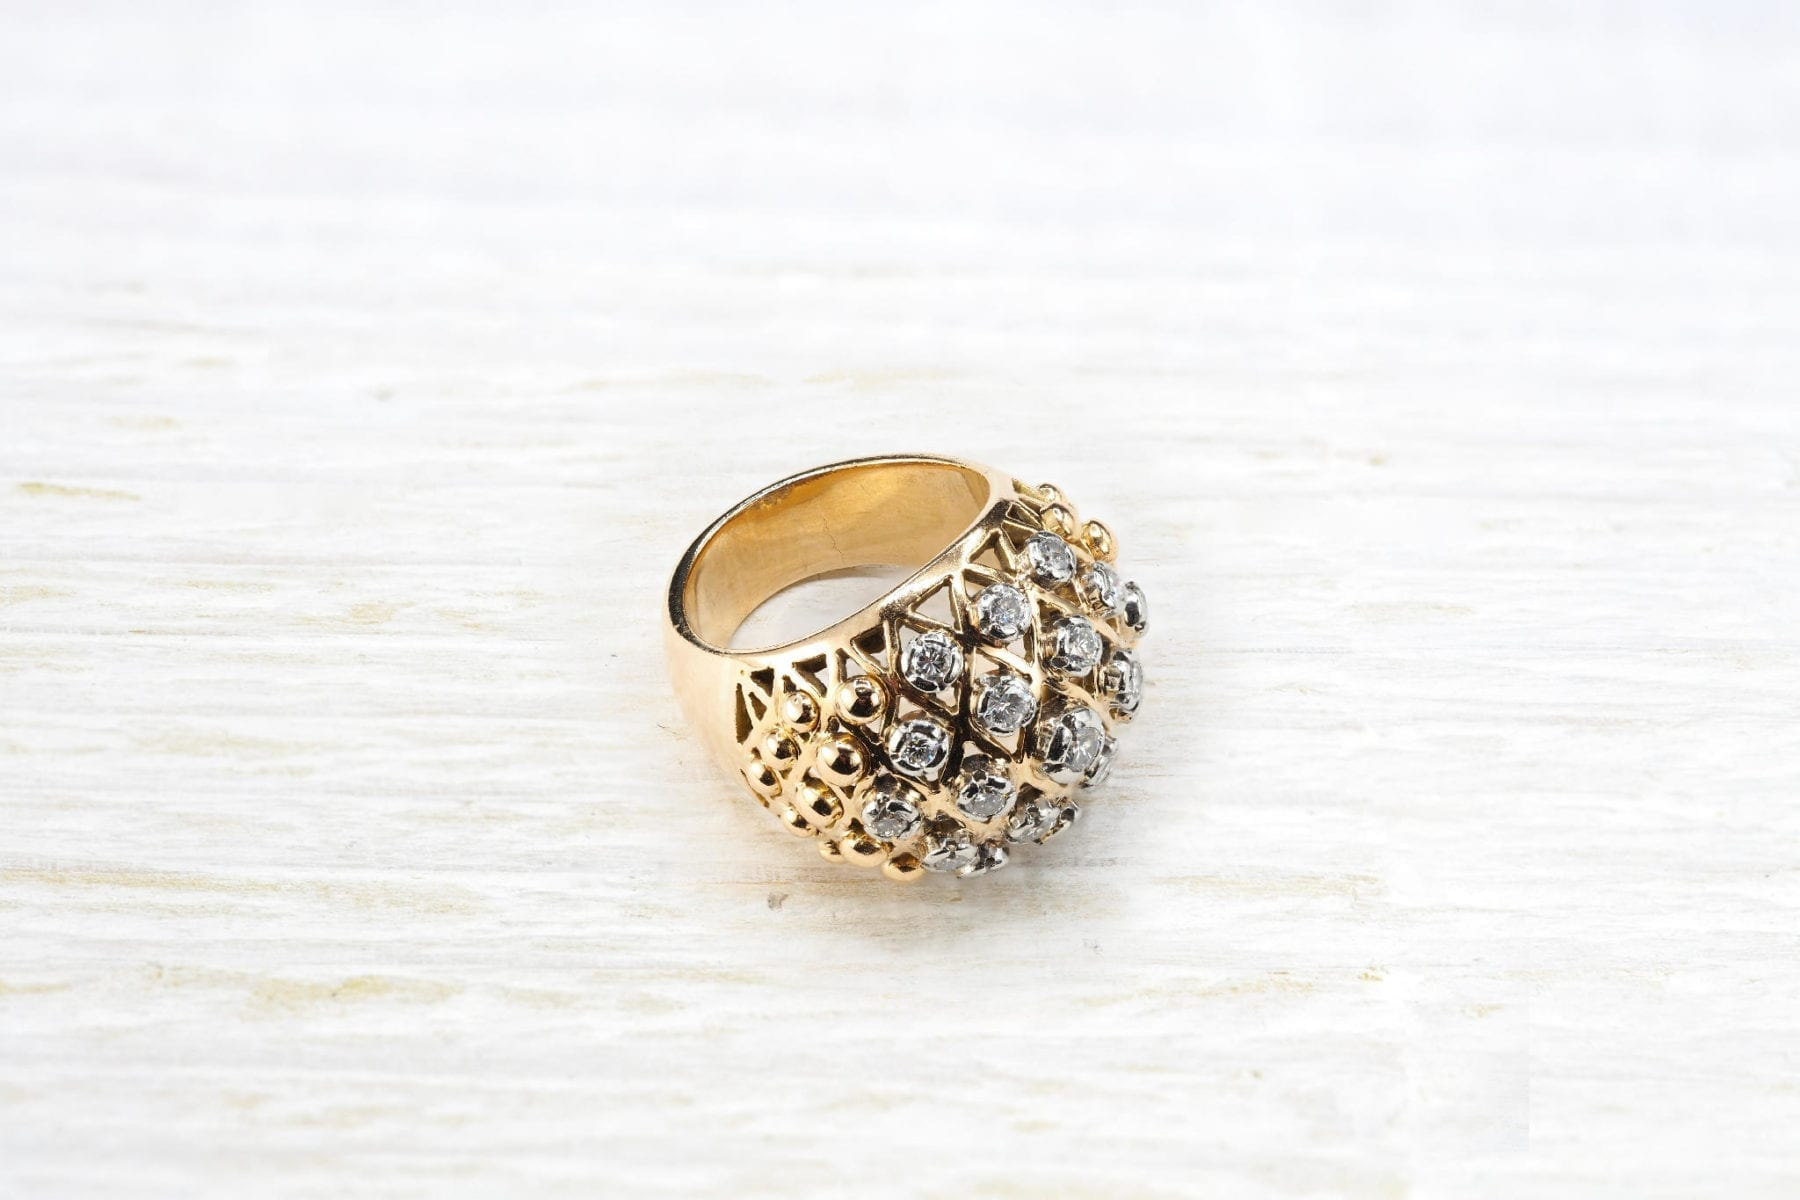 Antique diamonds ring in yellow gold